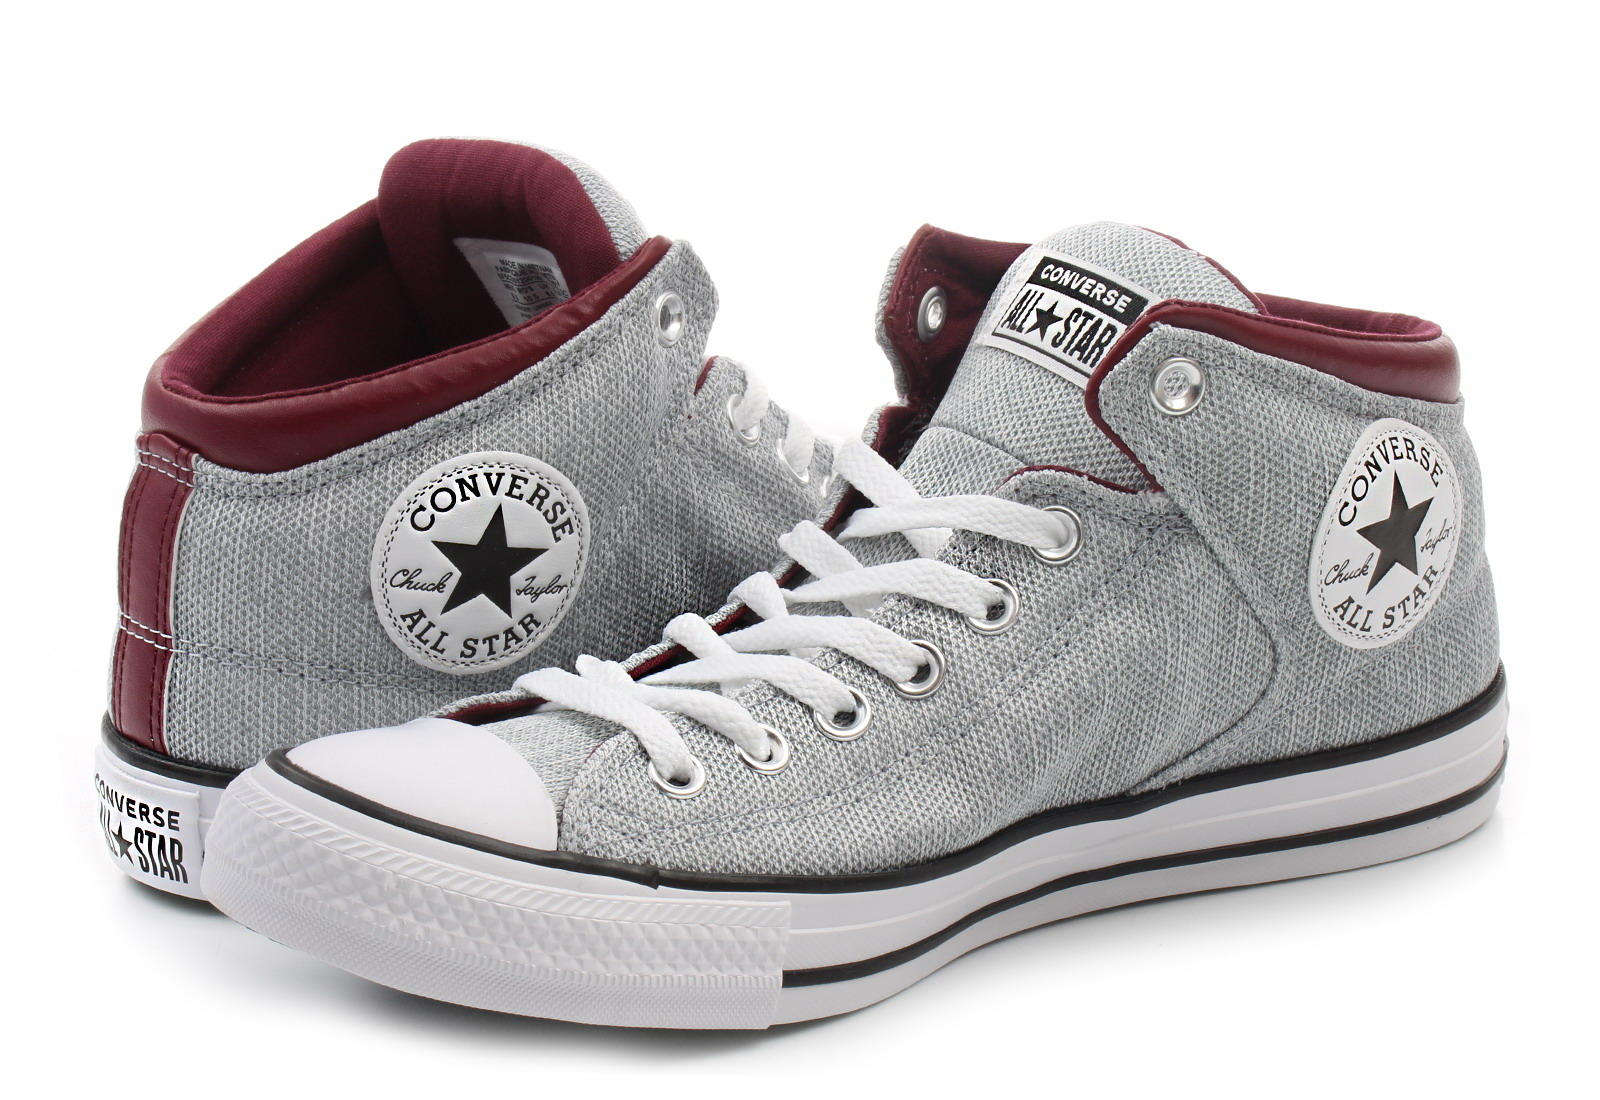 c1d4a417cef Converse Sneakers - Chuck Taylor All Star High Street Hi - 161516C ...